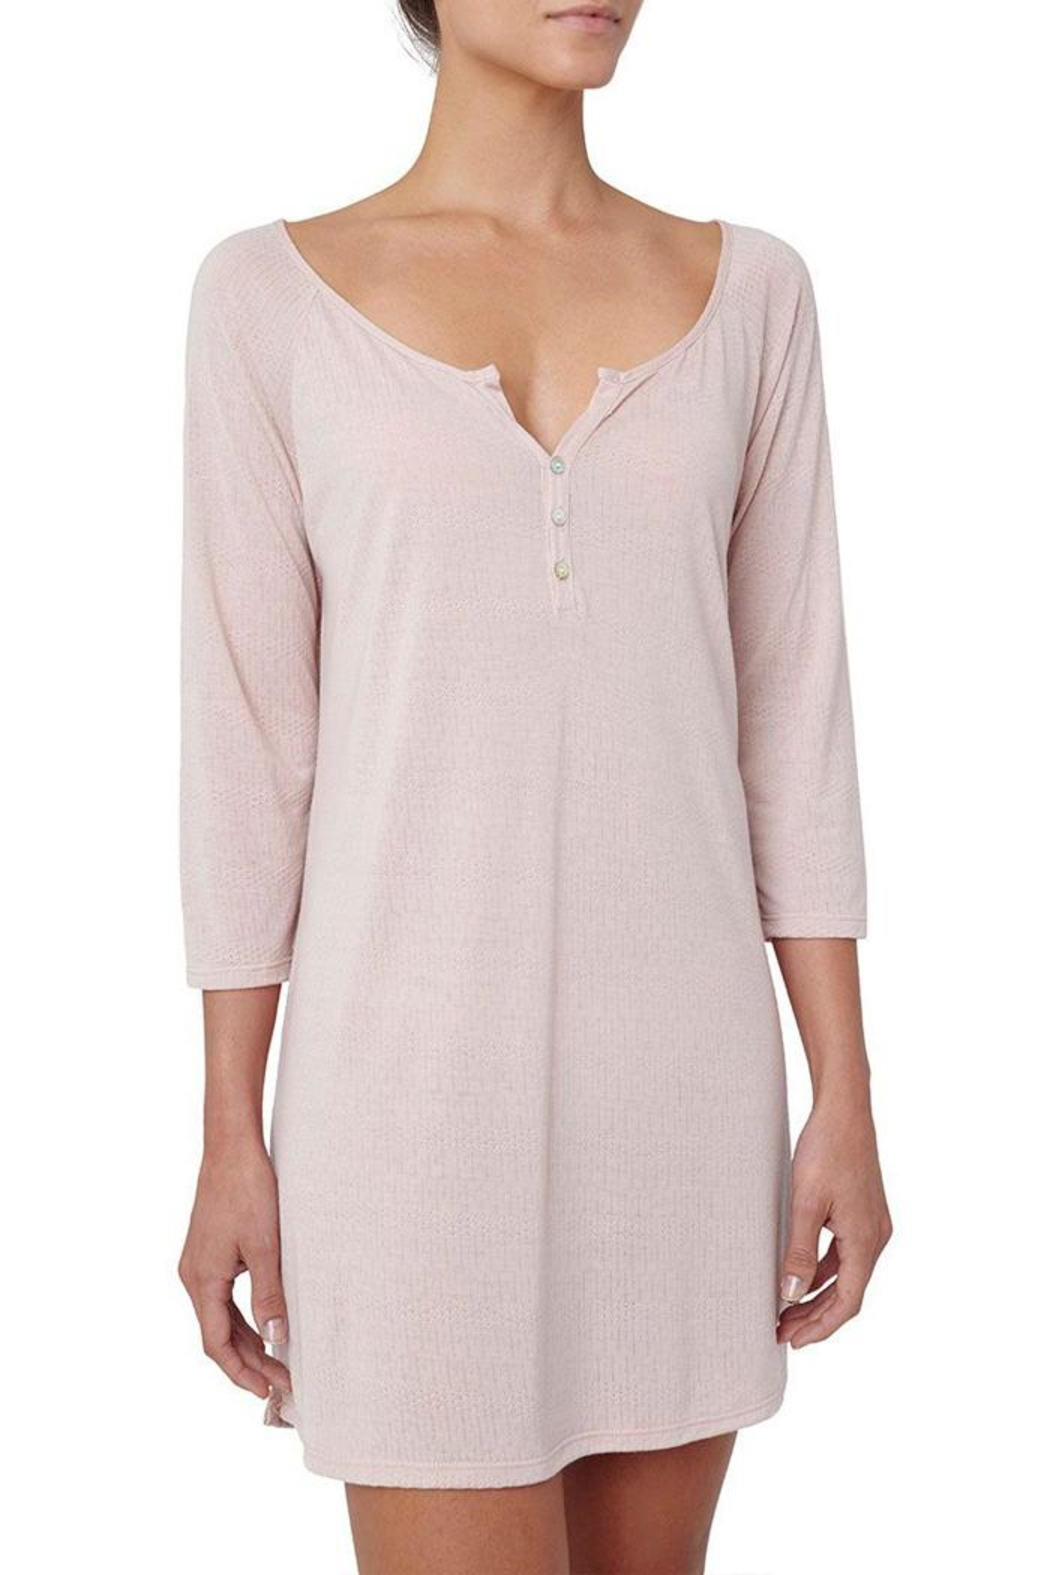 Eberjey Afternoon Delight Chemise - Main Image